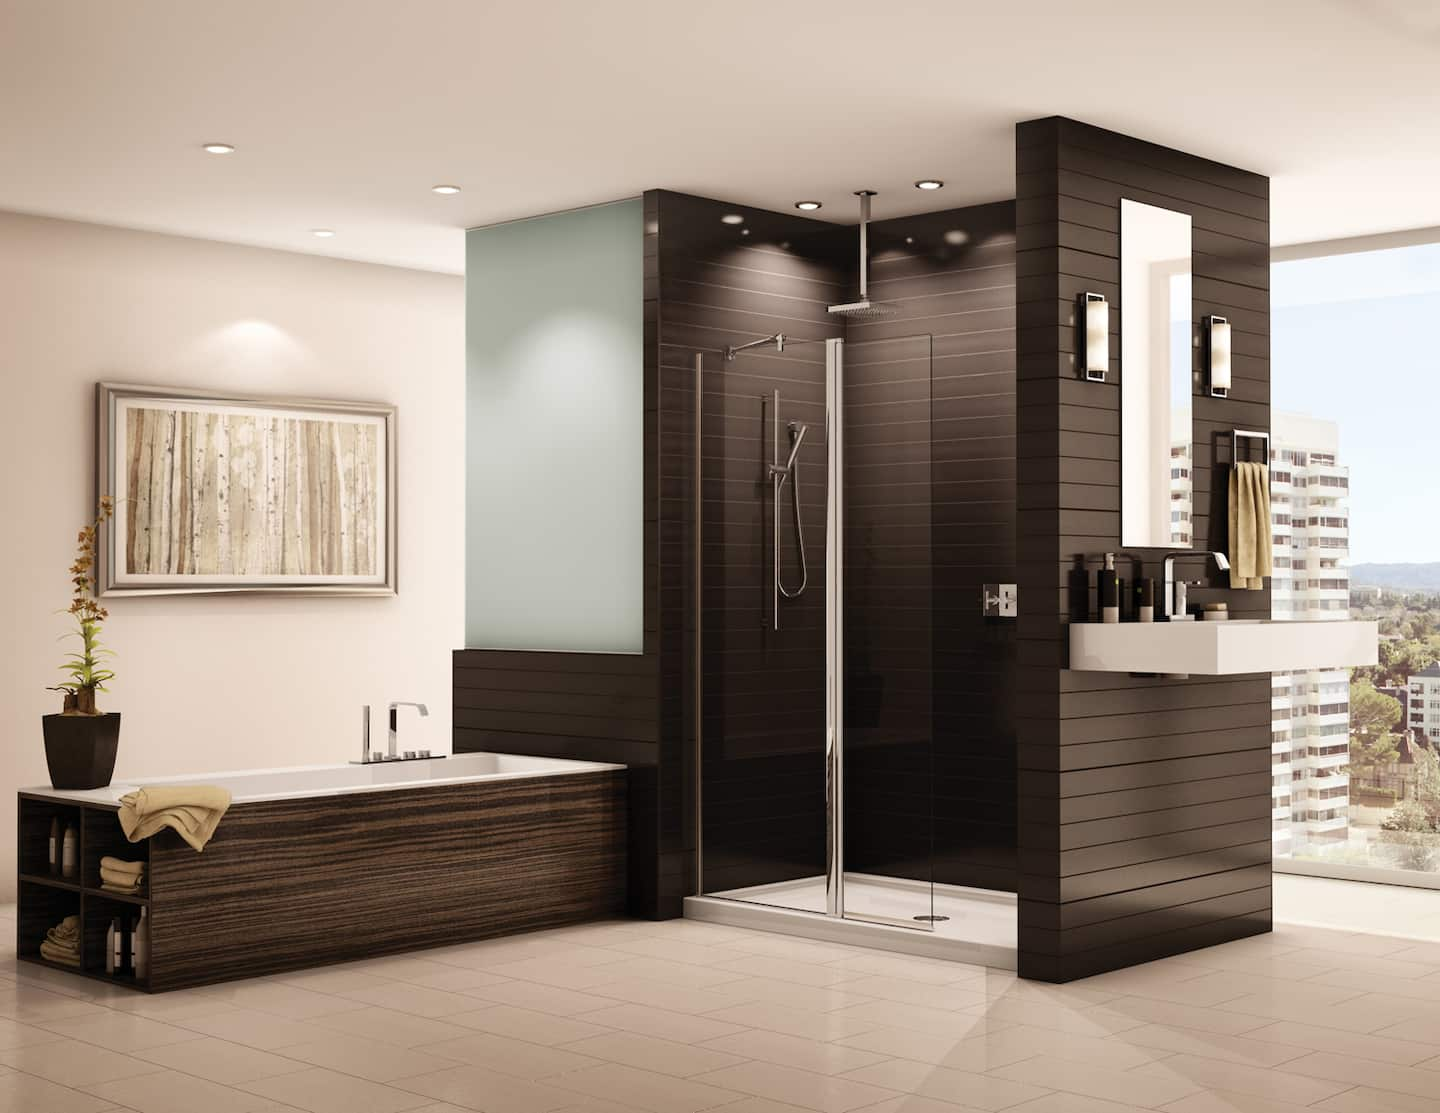 Bathroom Remodel Ideas With Walk In Tub And Shower pros and cons of walk-in tubs | angie's list